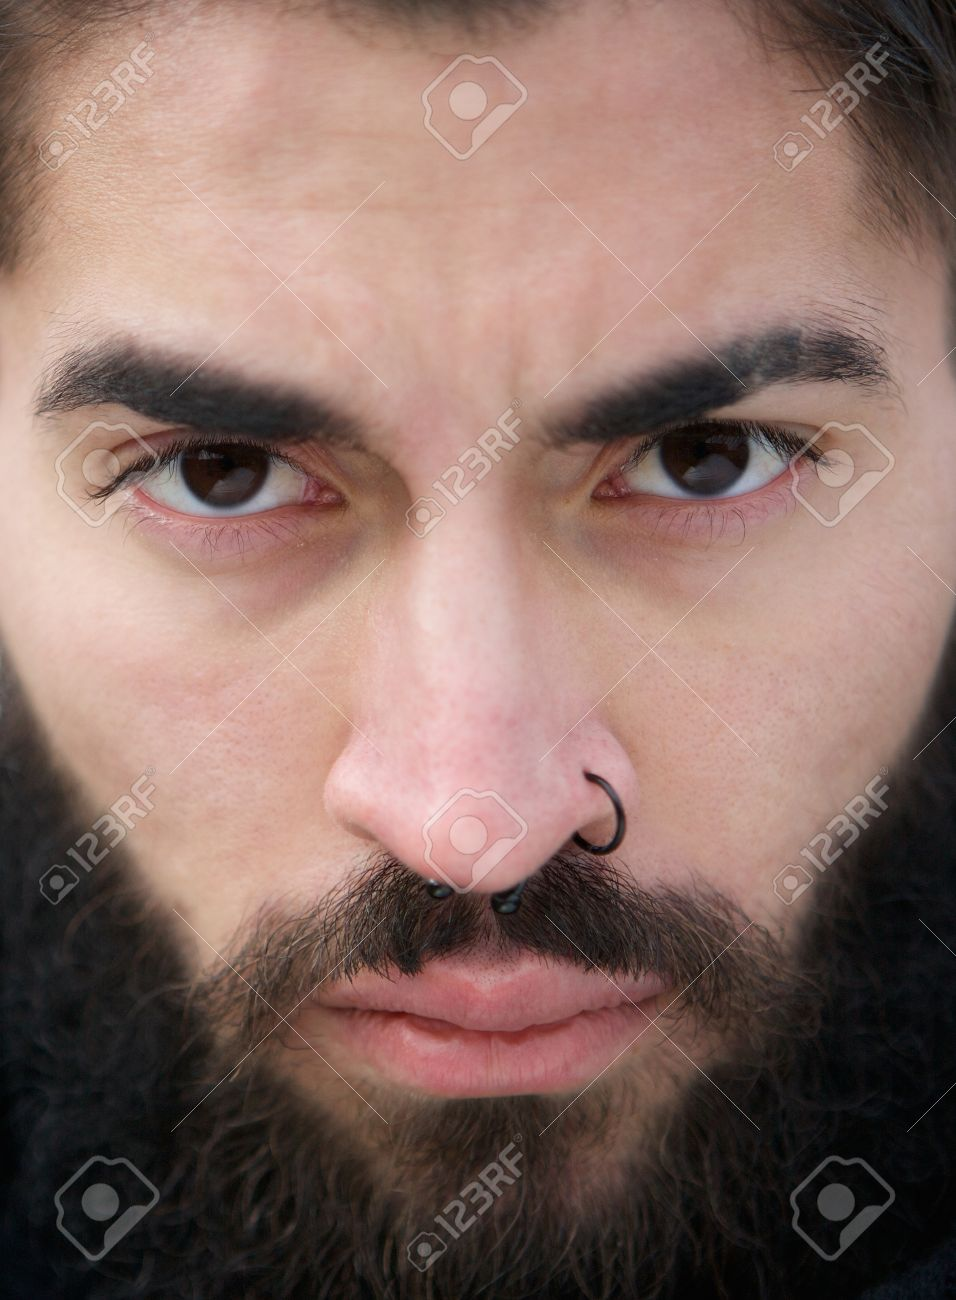 Close Up Man Face With Beard And Nose Piercing Stock Photo Picture